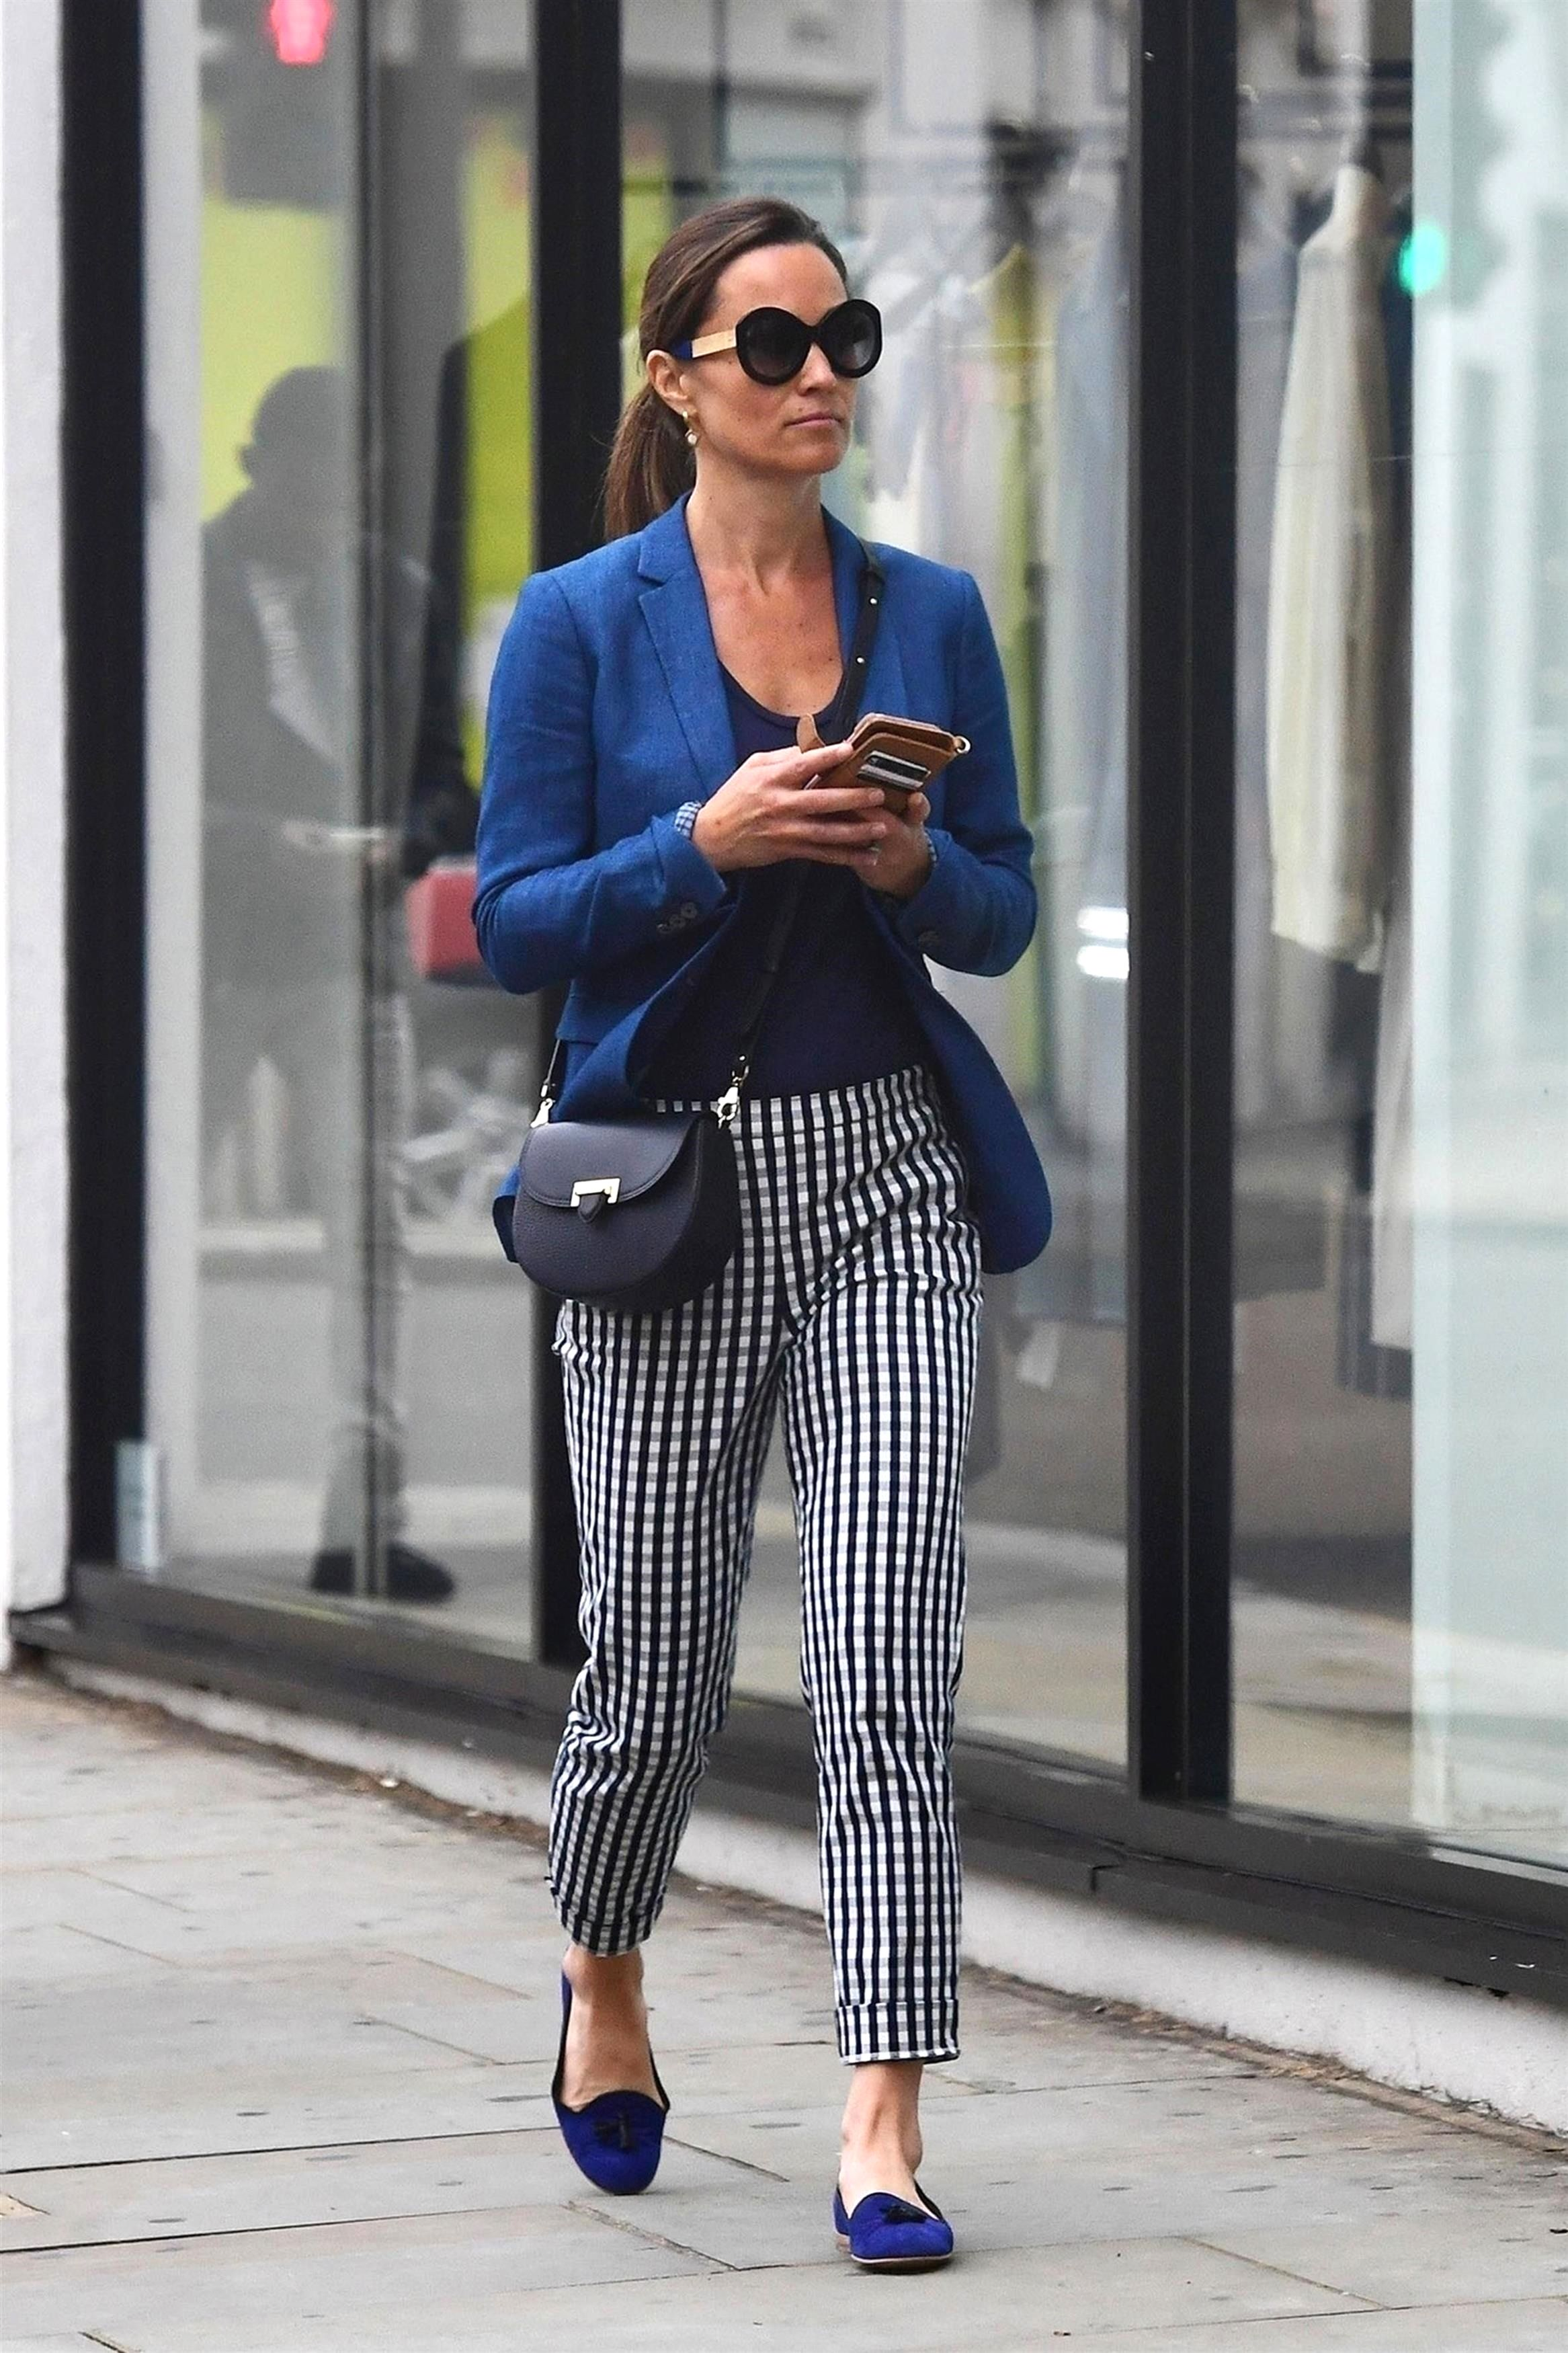 e84d3dc0f4248 Pippa Middleton Wears Gingham Check Pants in London — Pippa ...